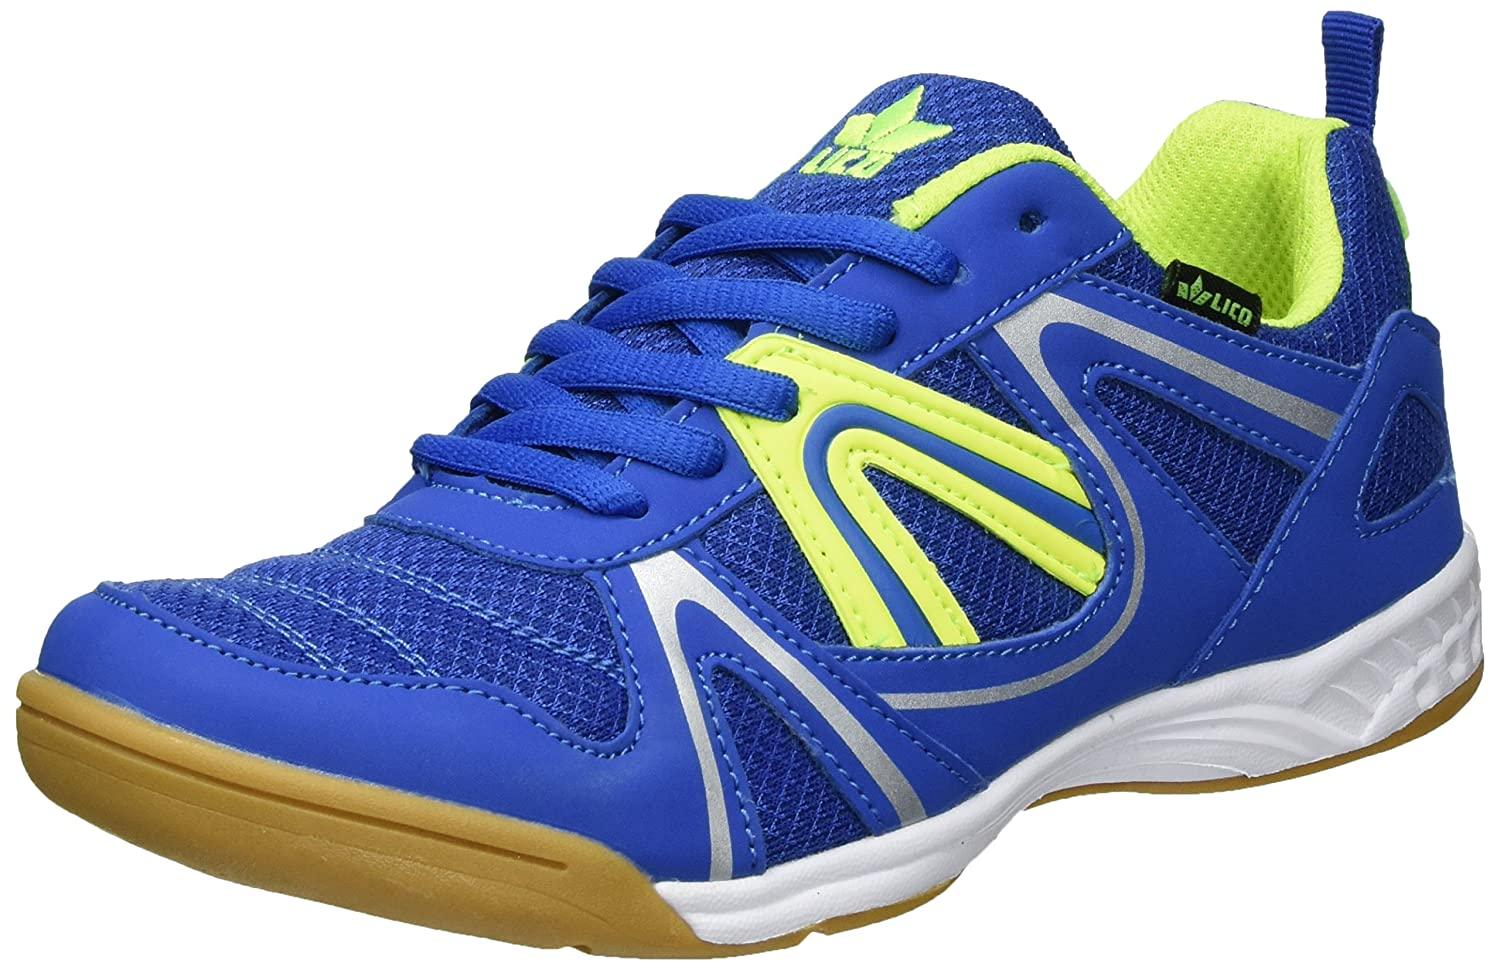 Unisex Adults Fit Multisport Indoor Shoes Lico KNlyOu5